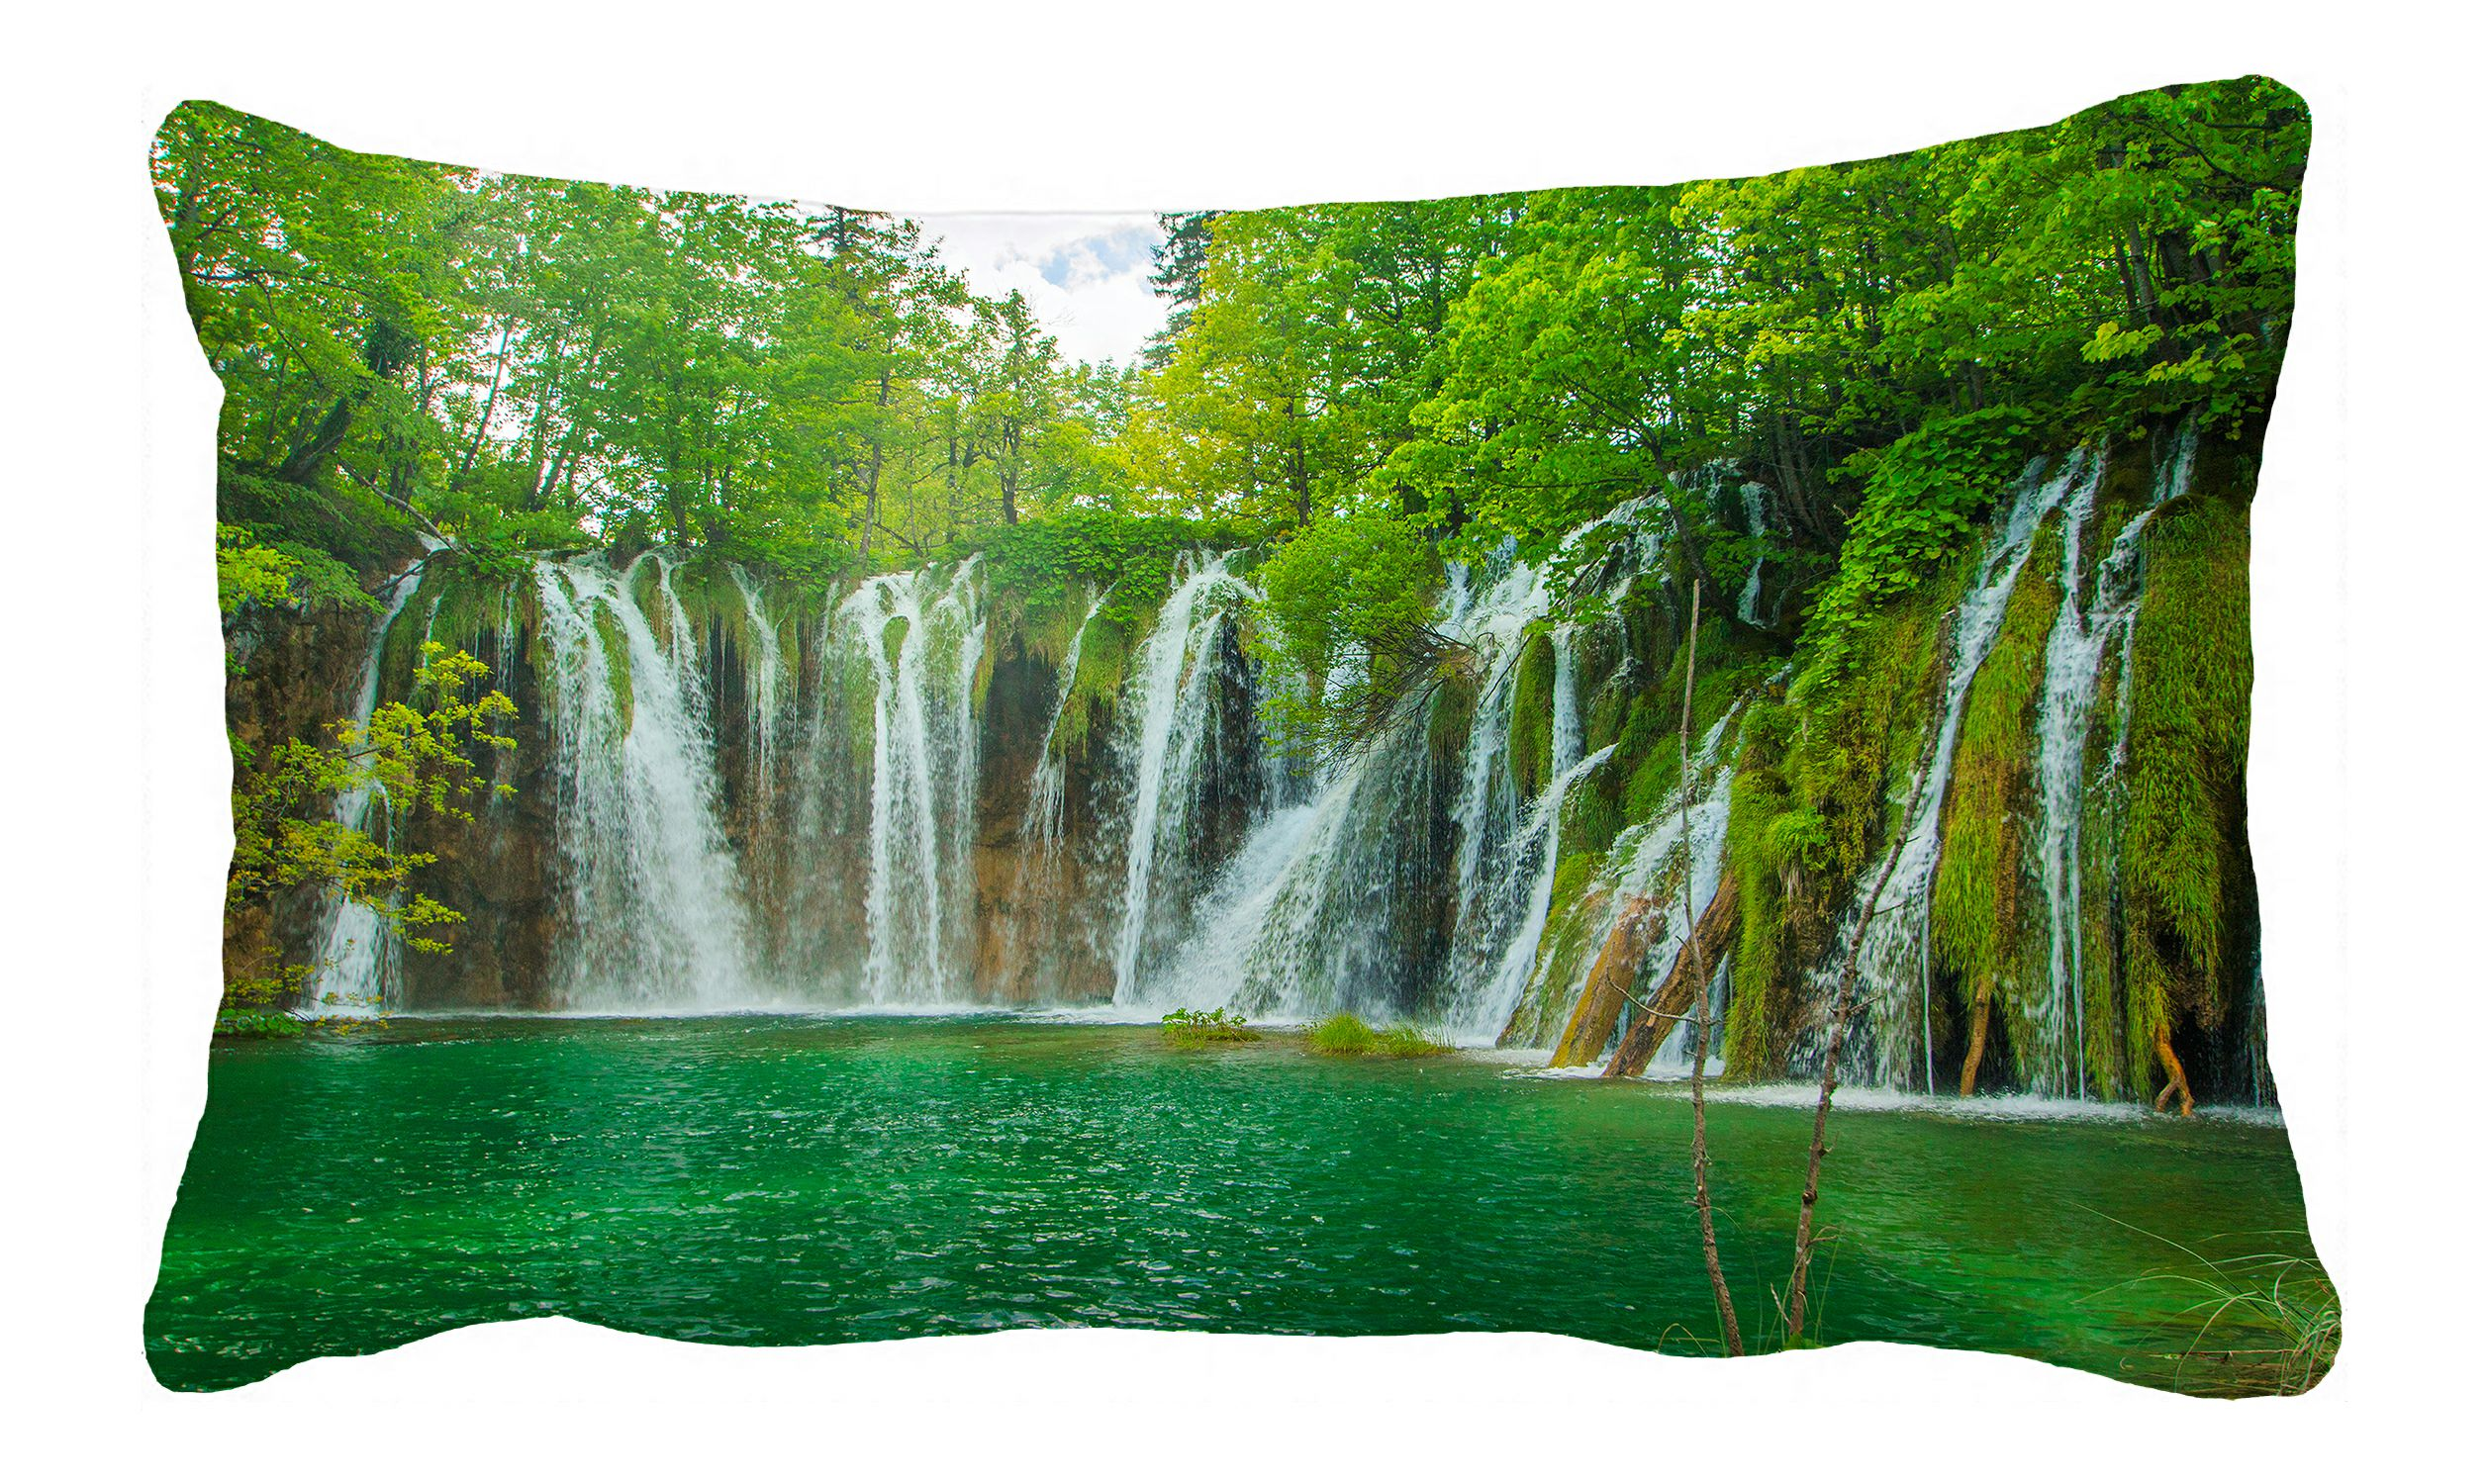 Phfzk Nature Scenery Pillow Case Beautiful Waterfall In Plitvice Lakes National Park In Croatia Pillowcase Throw Pillow Cushion Cover Two Sides Size 20x30 Inches Walmart Com Walmart Com